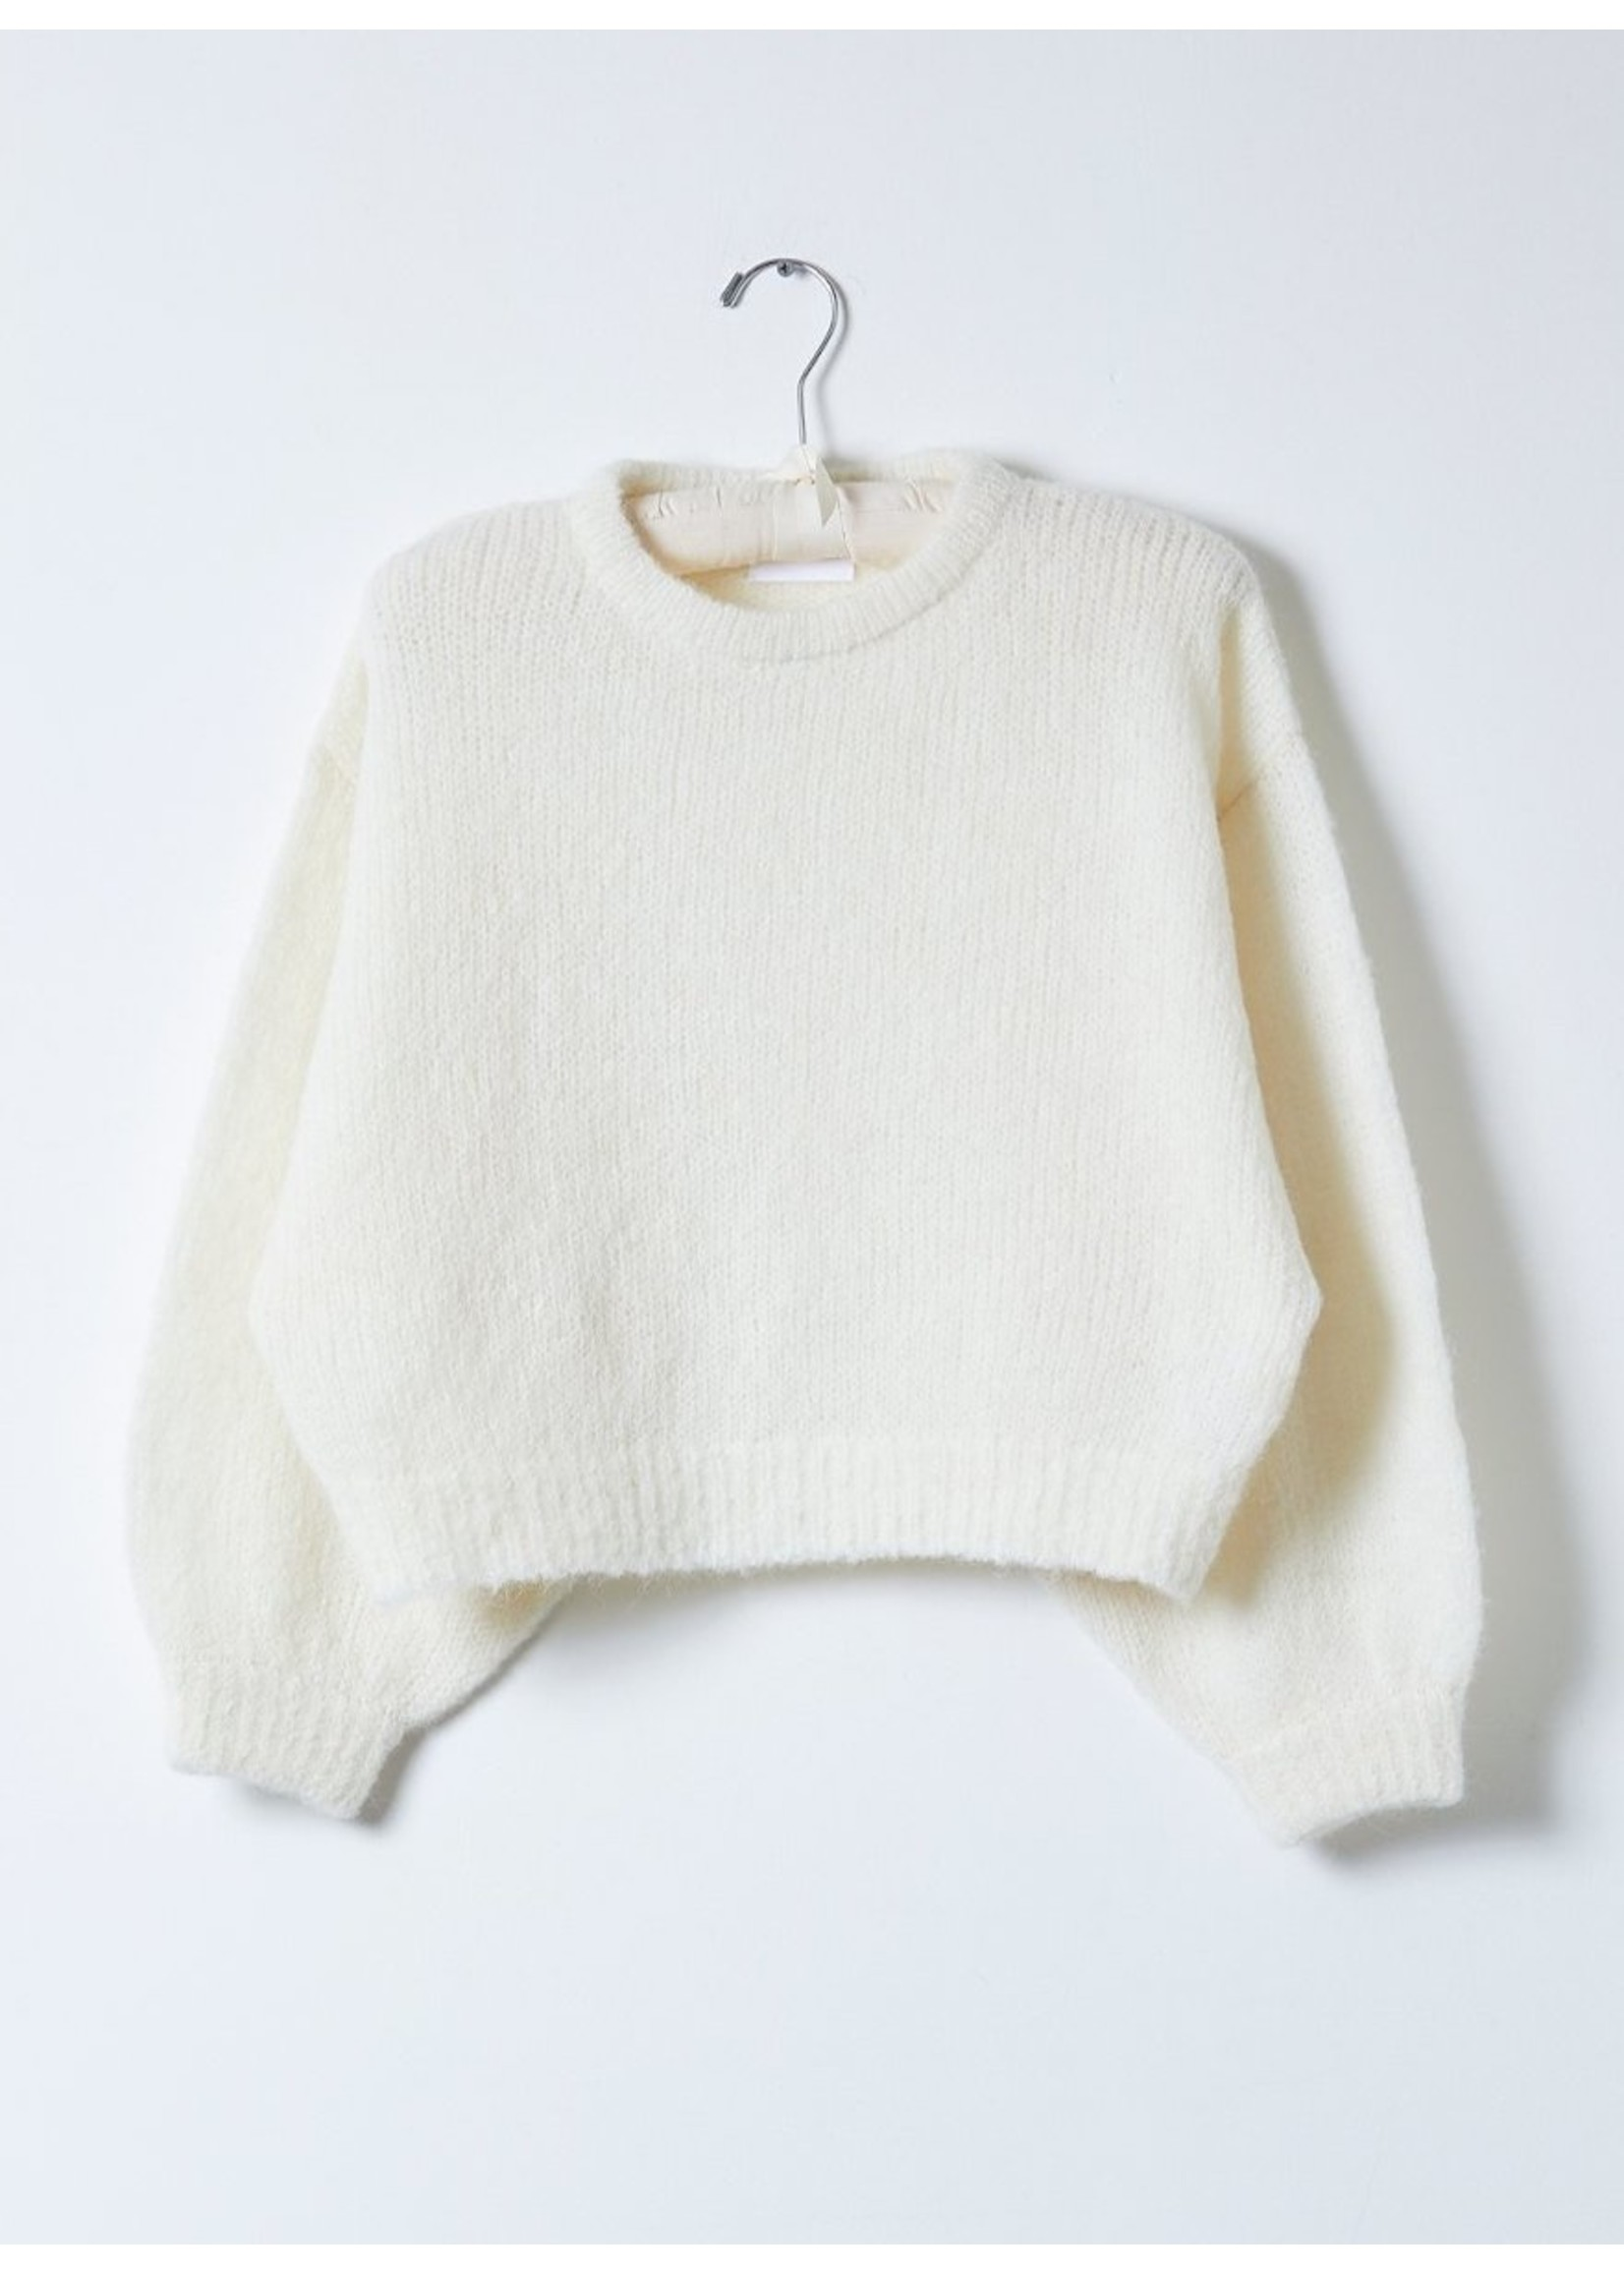 Atelier Delphine Atelier Delphine Cream Balloon Sleeve Sweater